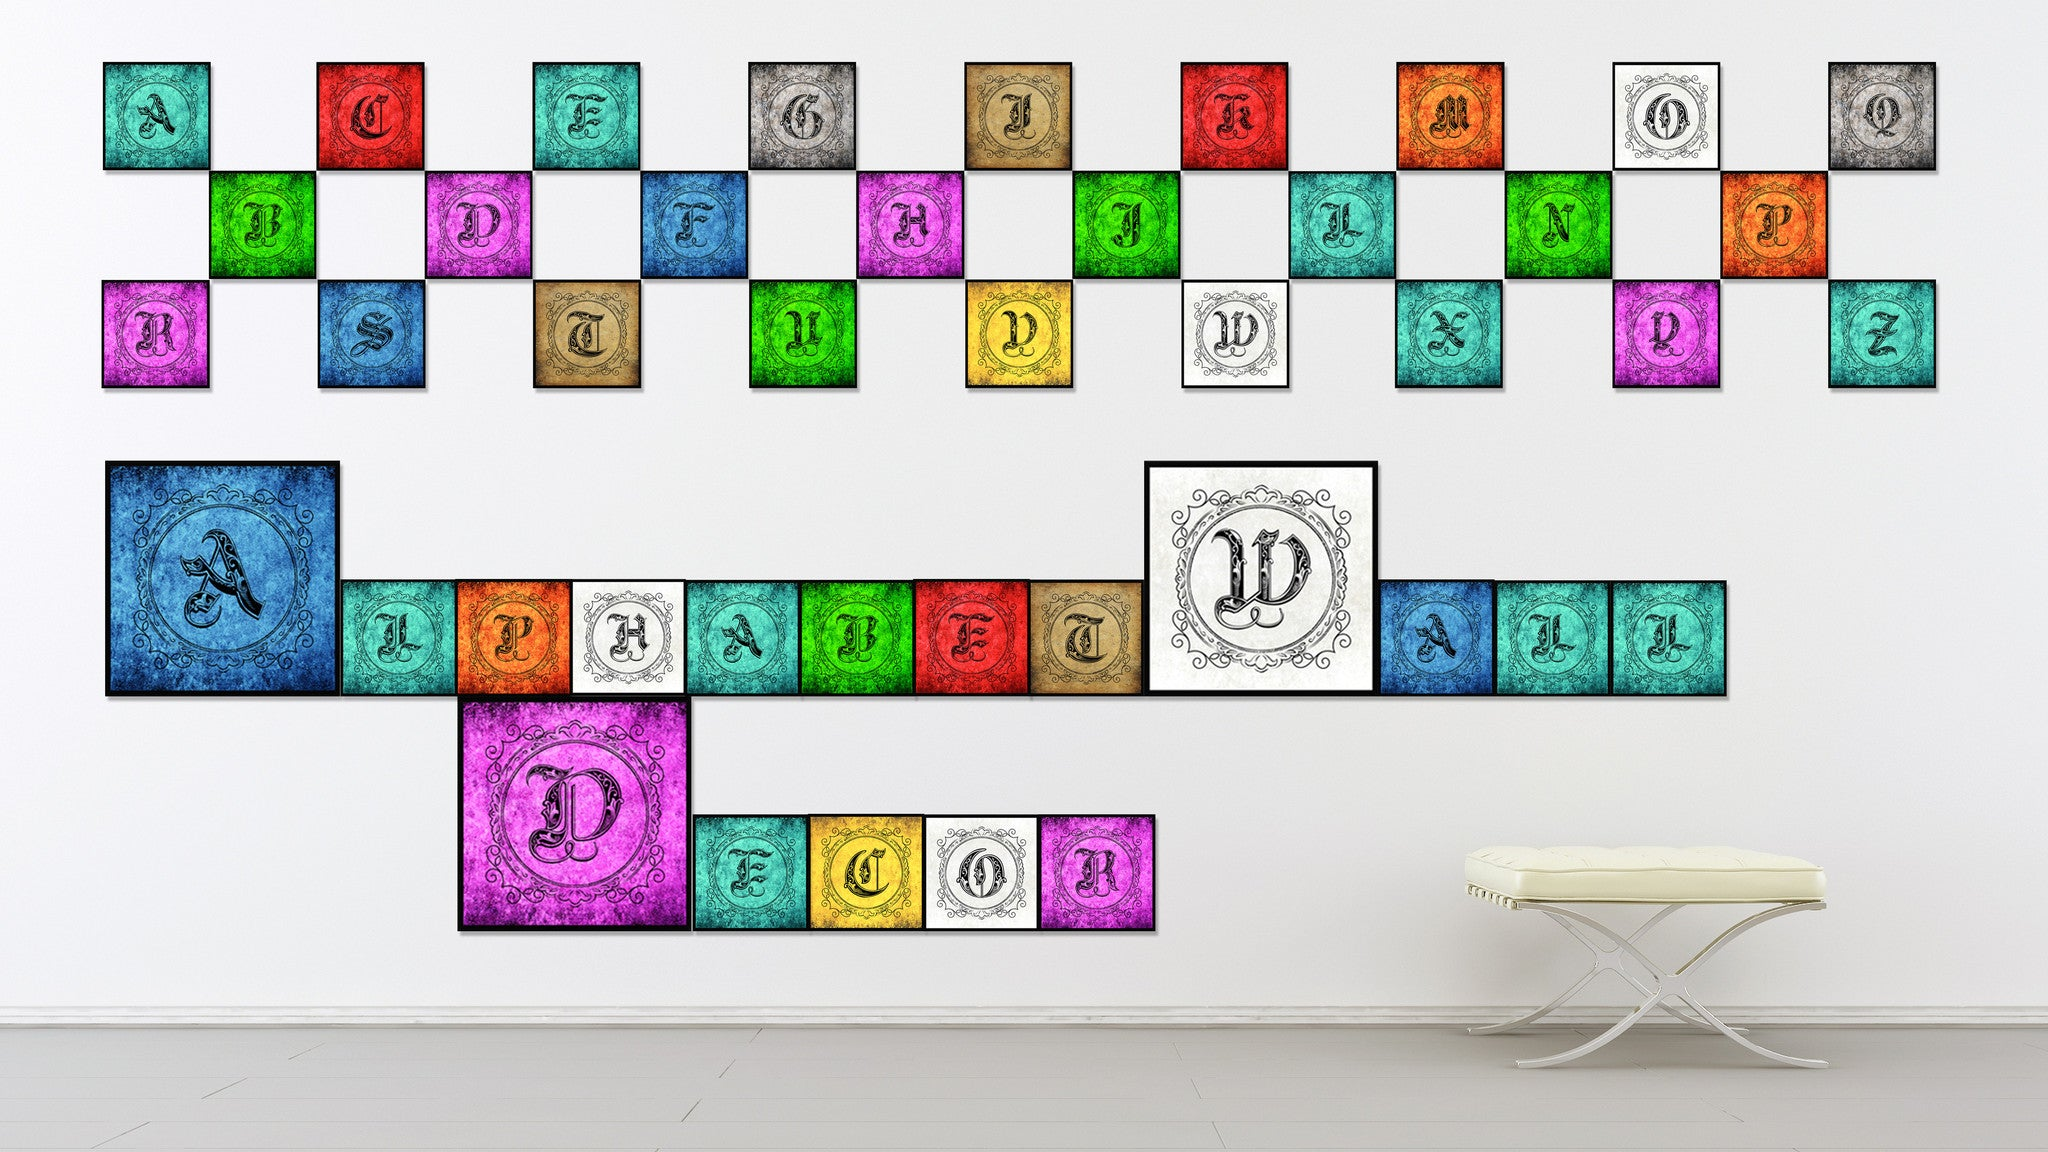 Alphabet Q Black Canvas Print Black Frame Kids Bedroom Wall Décor Home Art